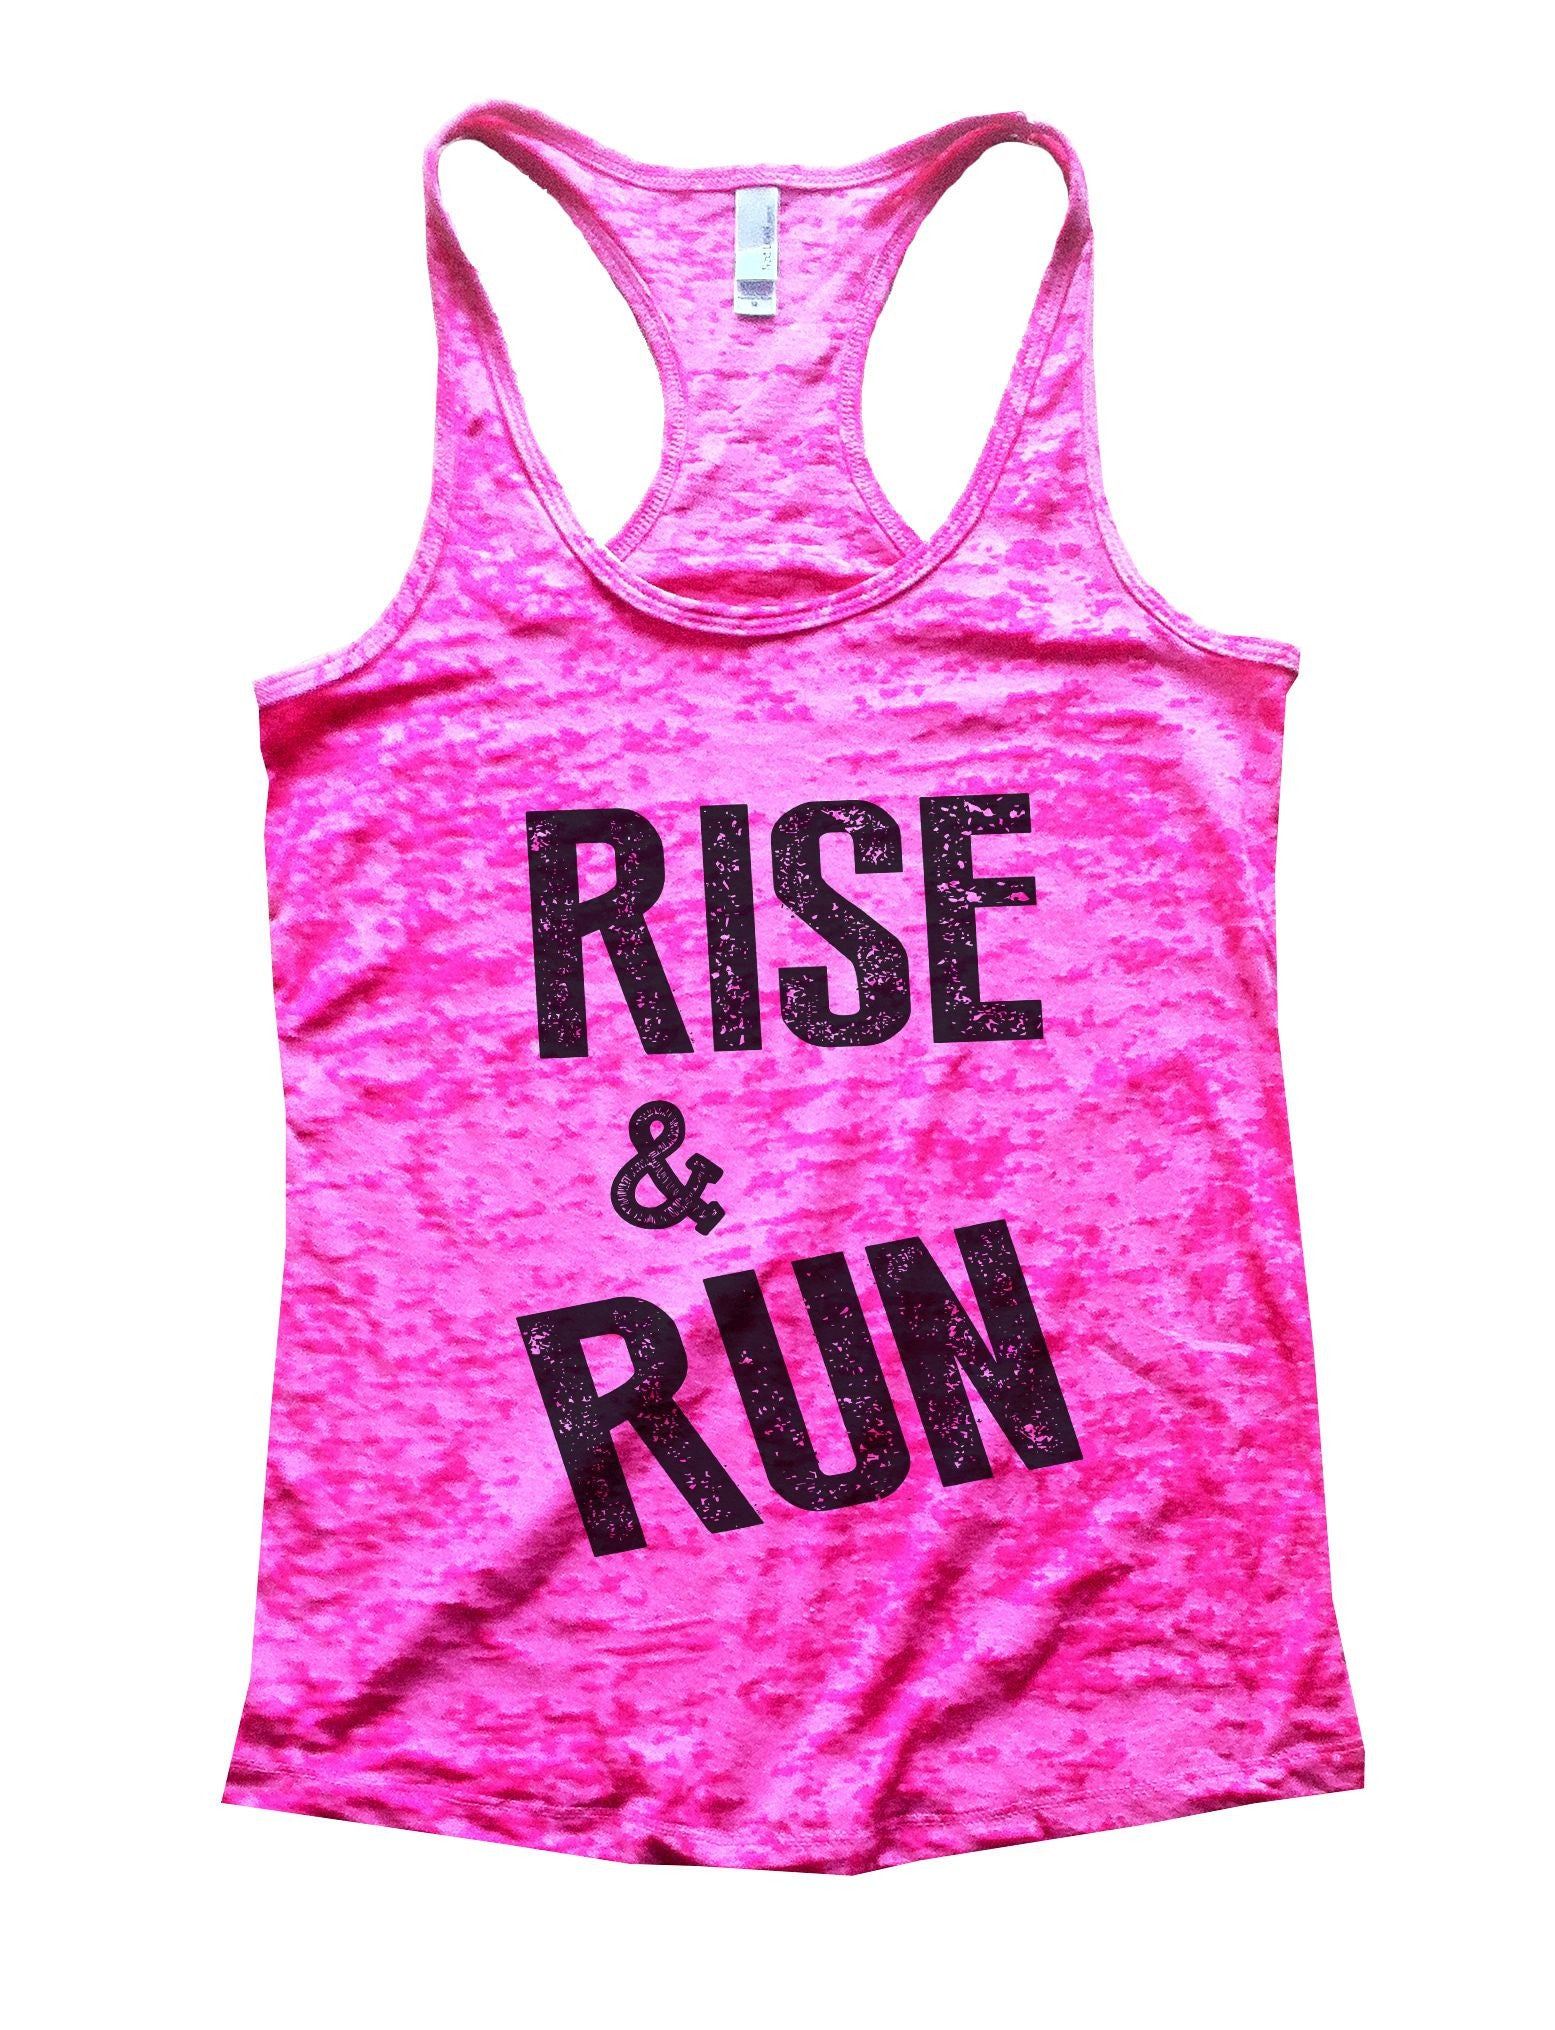 Rise & Run Burnout Tank Top By BurnoutTankTops.com - 672 - Funny Shirts Tank Tops Burnouts and Triblends  - 3